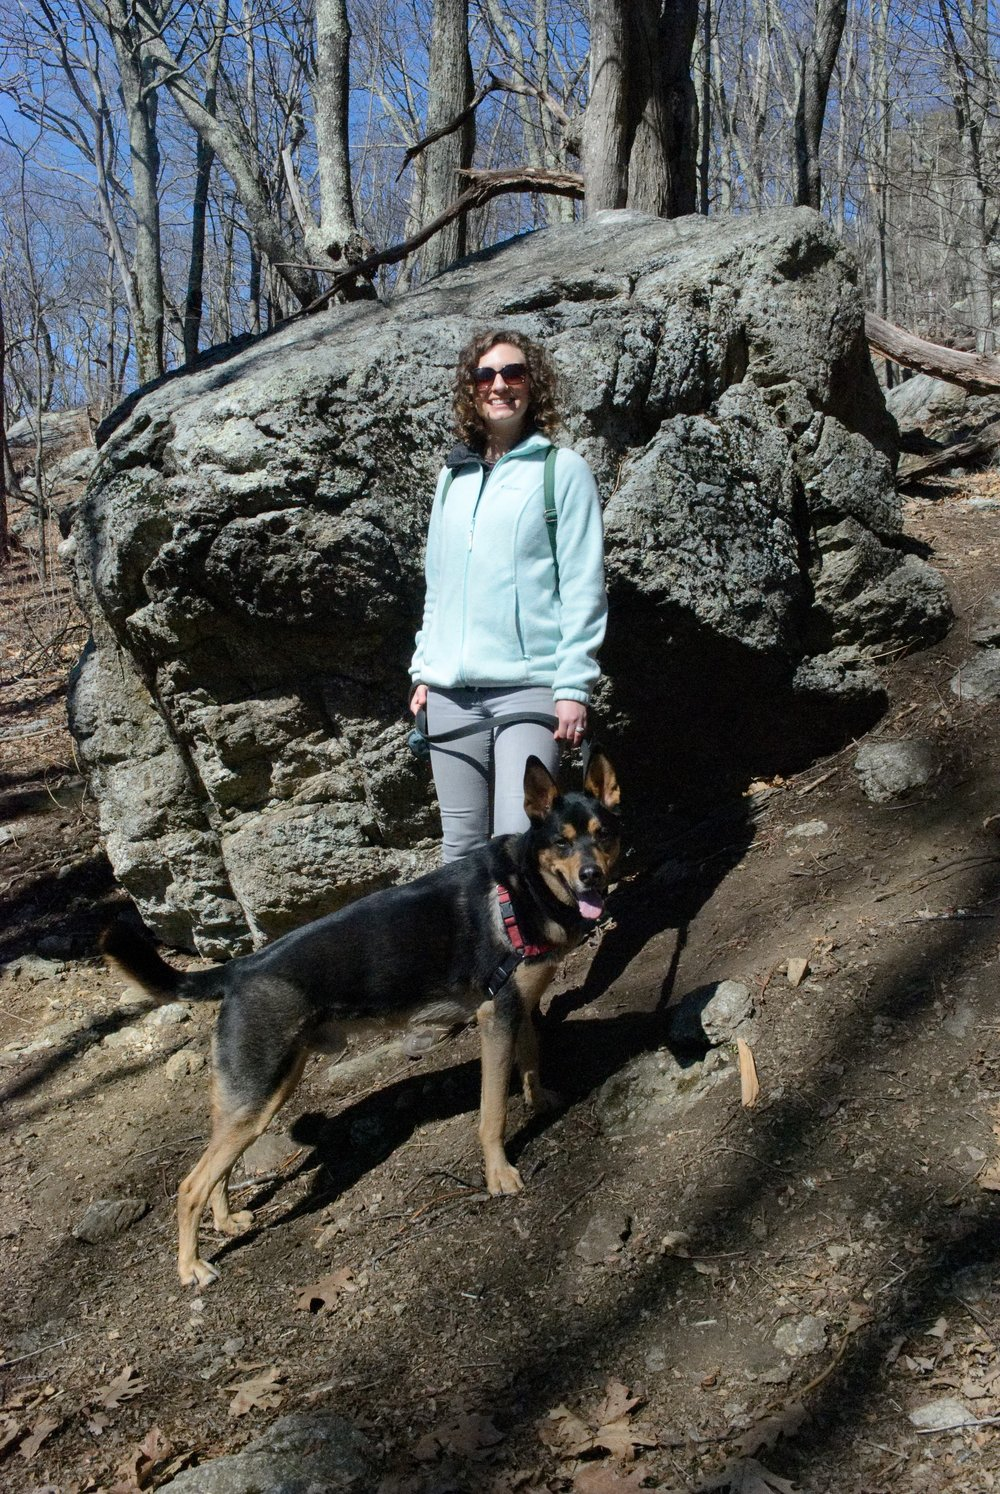 Trail wife and trail dog in front of trail boulder.